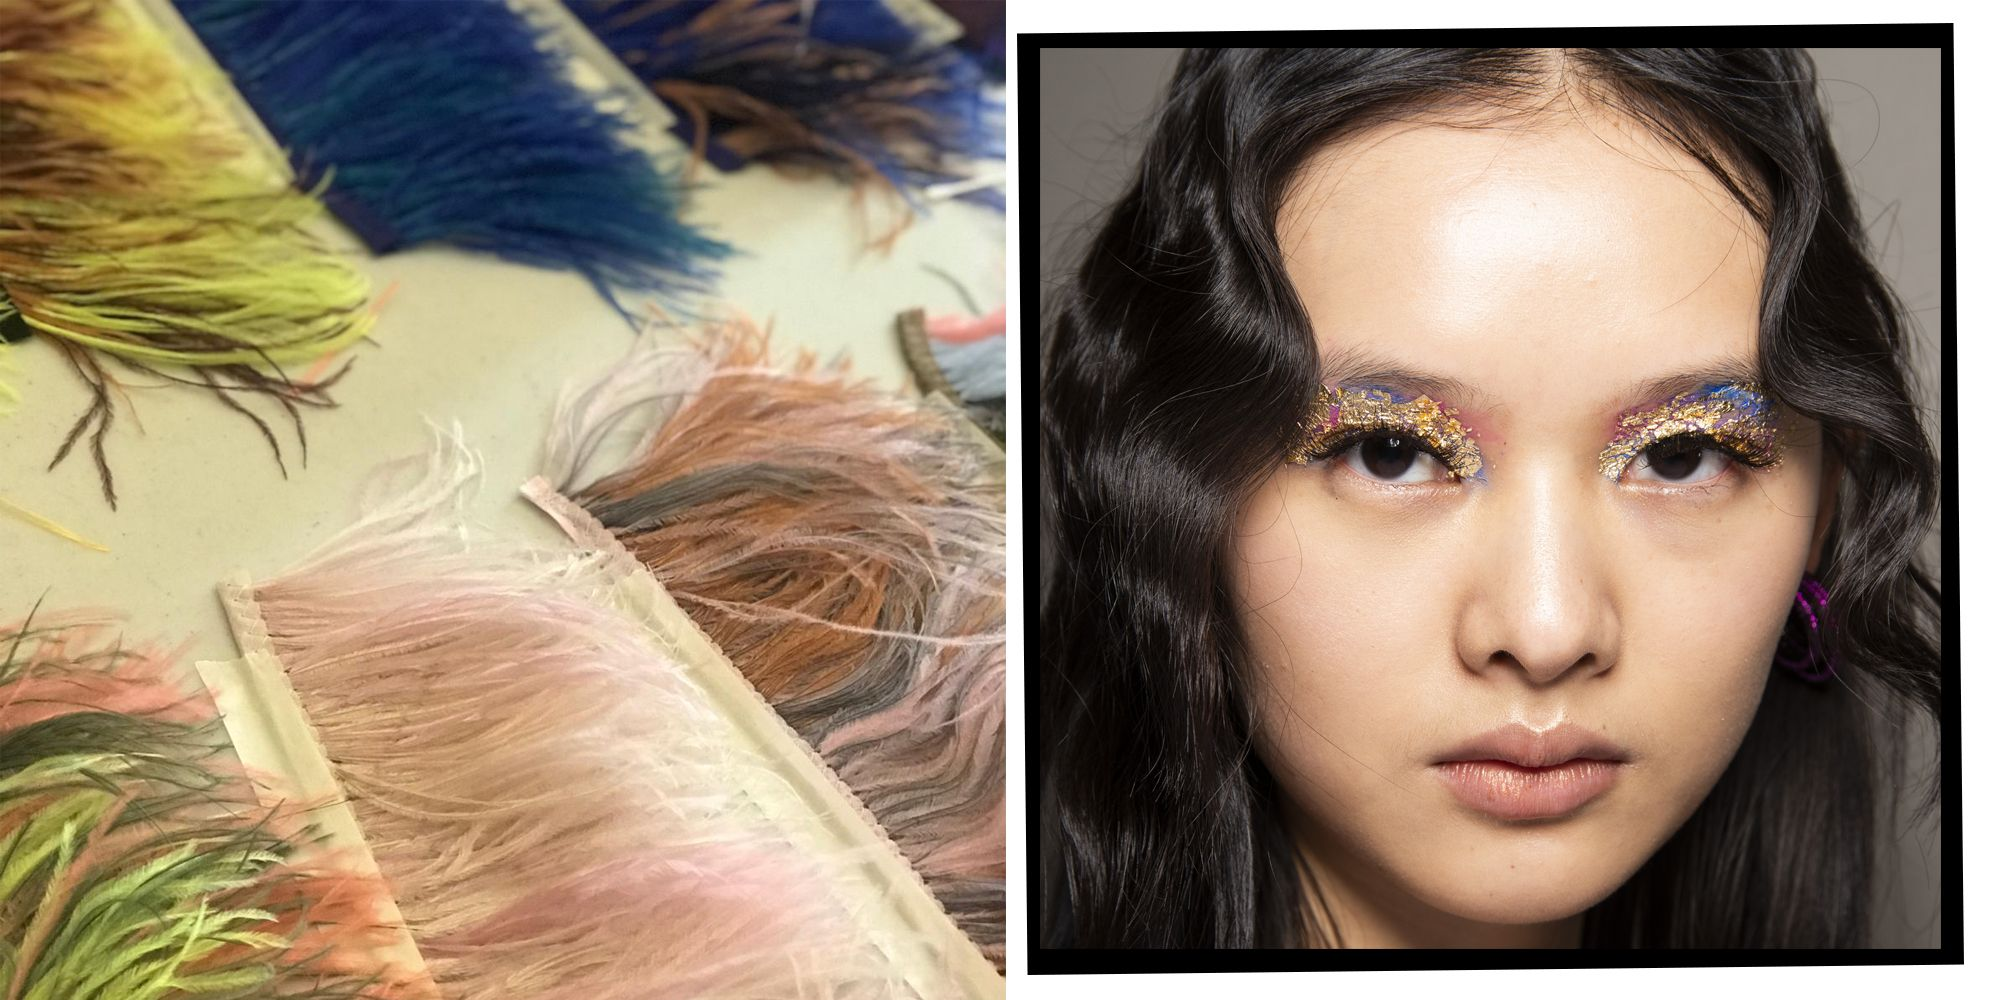 Arts and crafts aw19 beauty trend